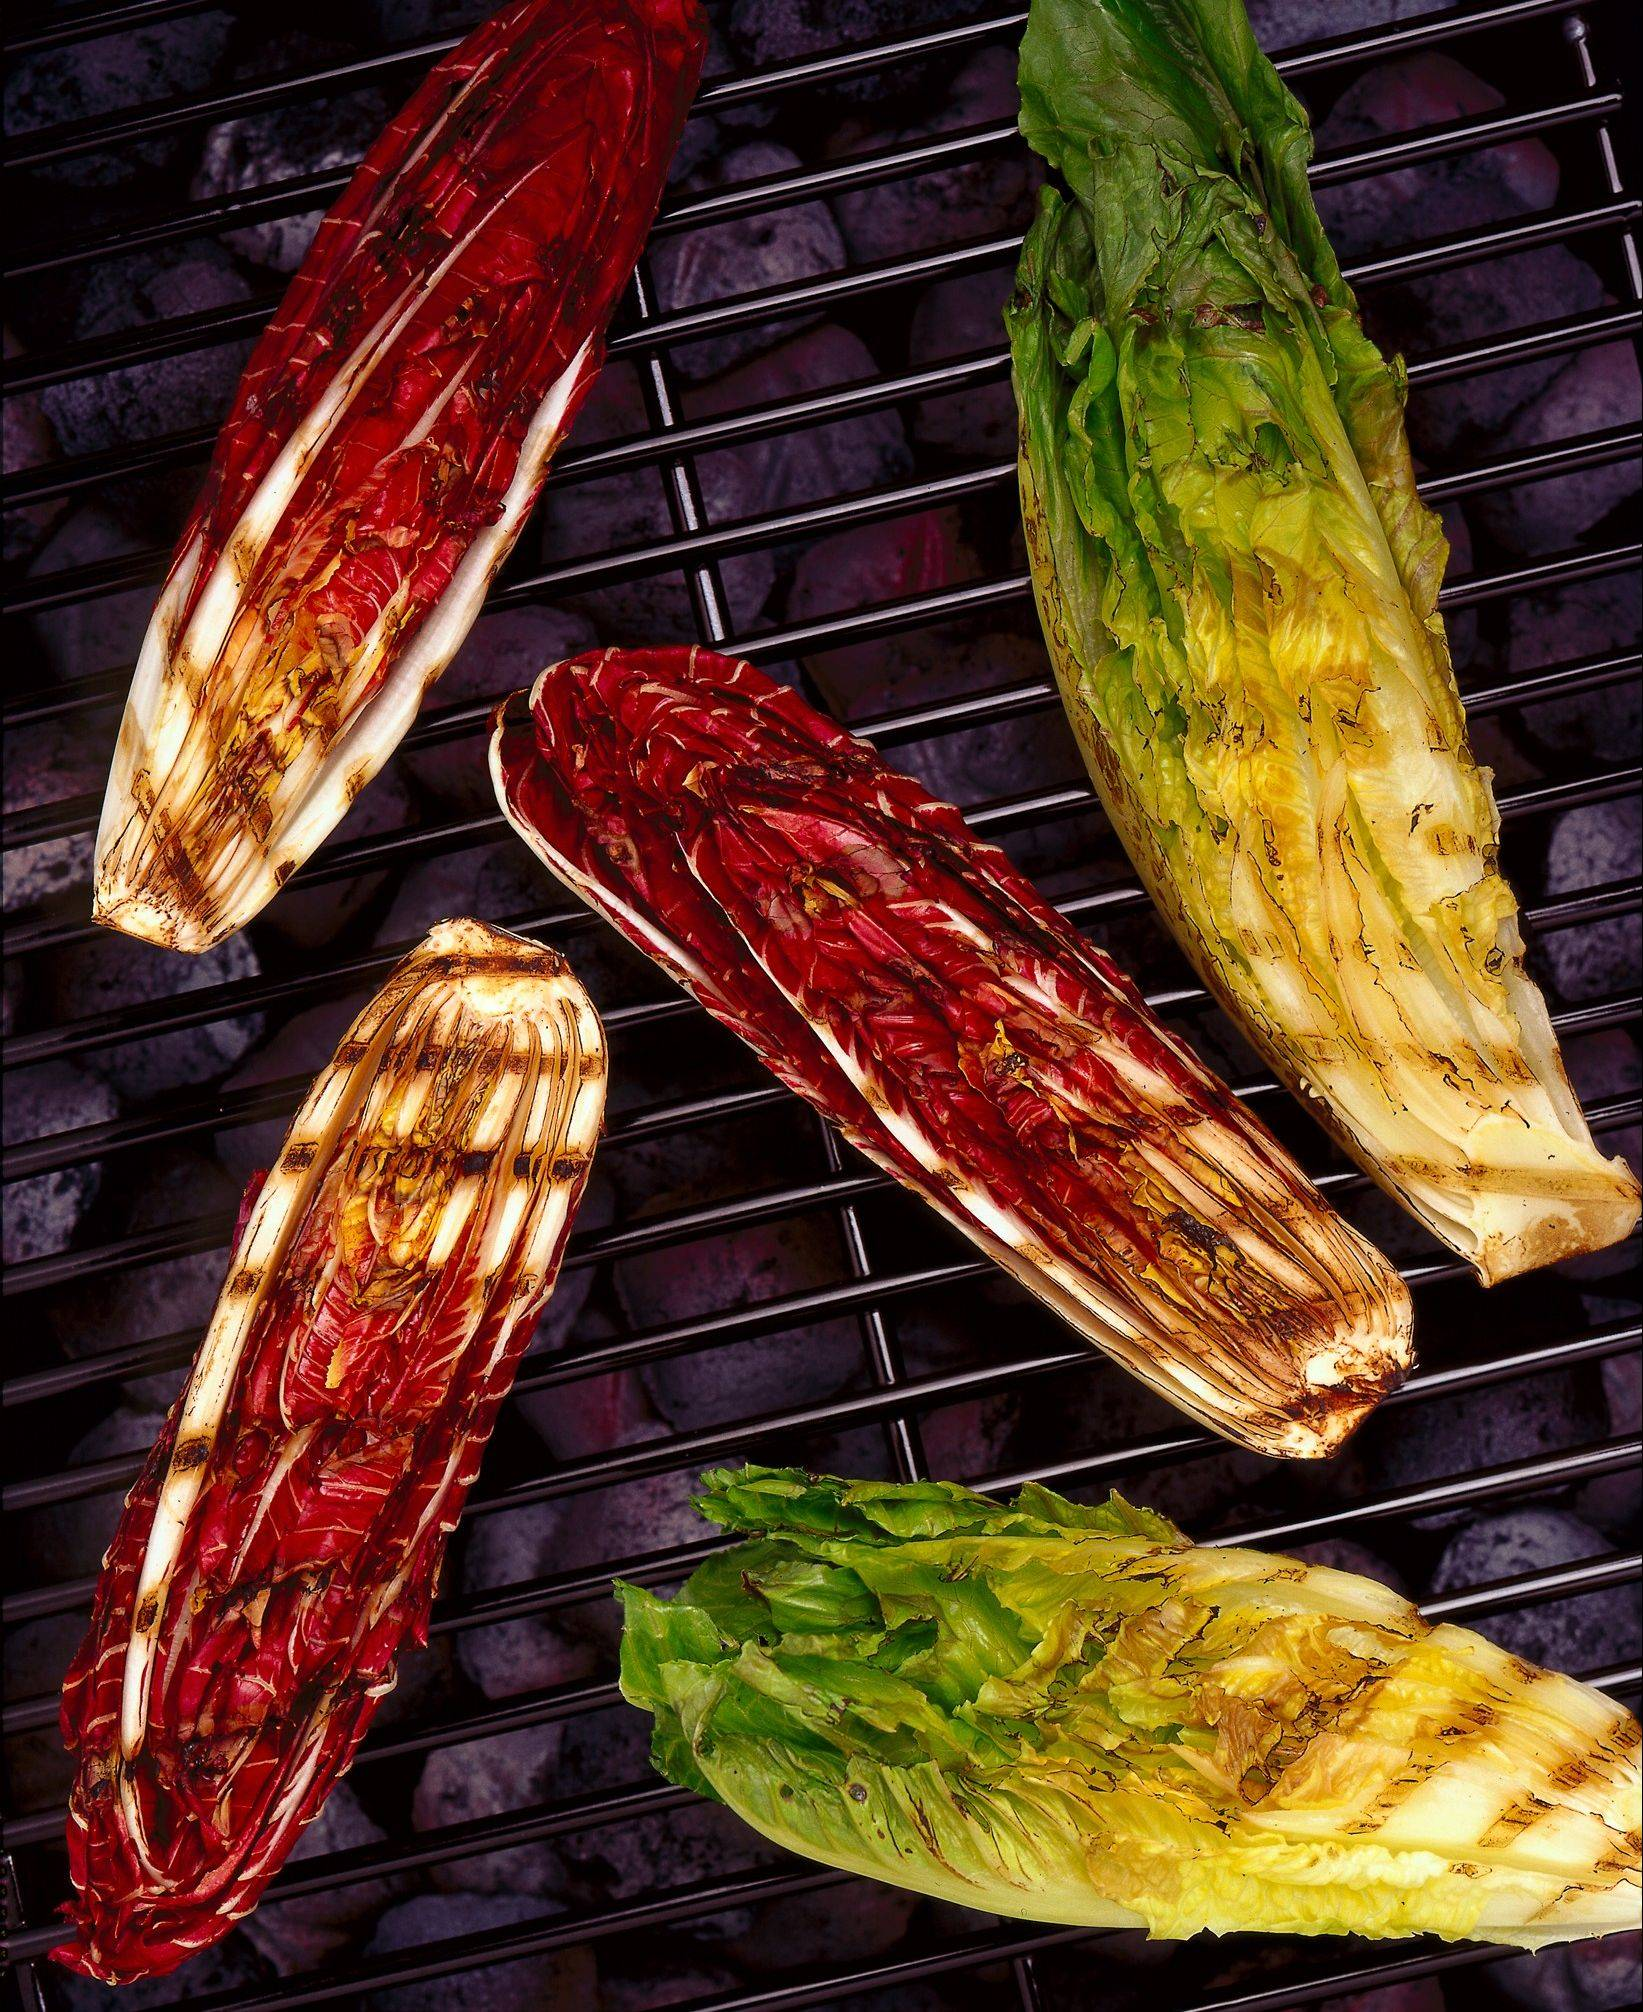 Grilled greens rich with flavor